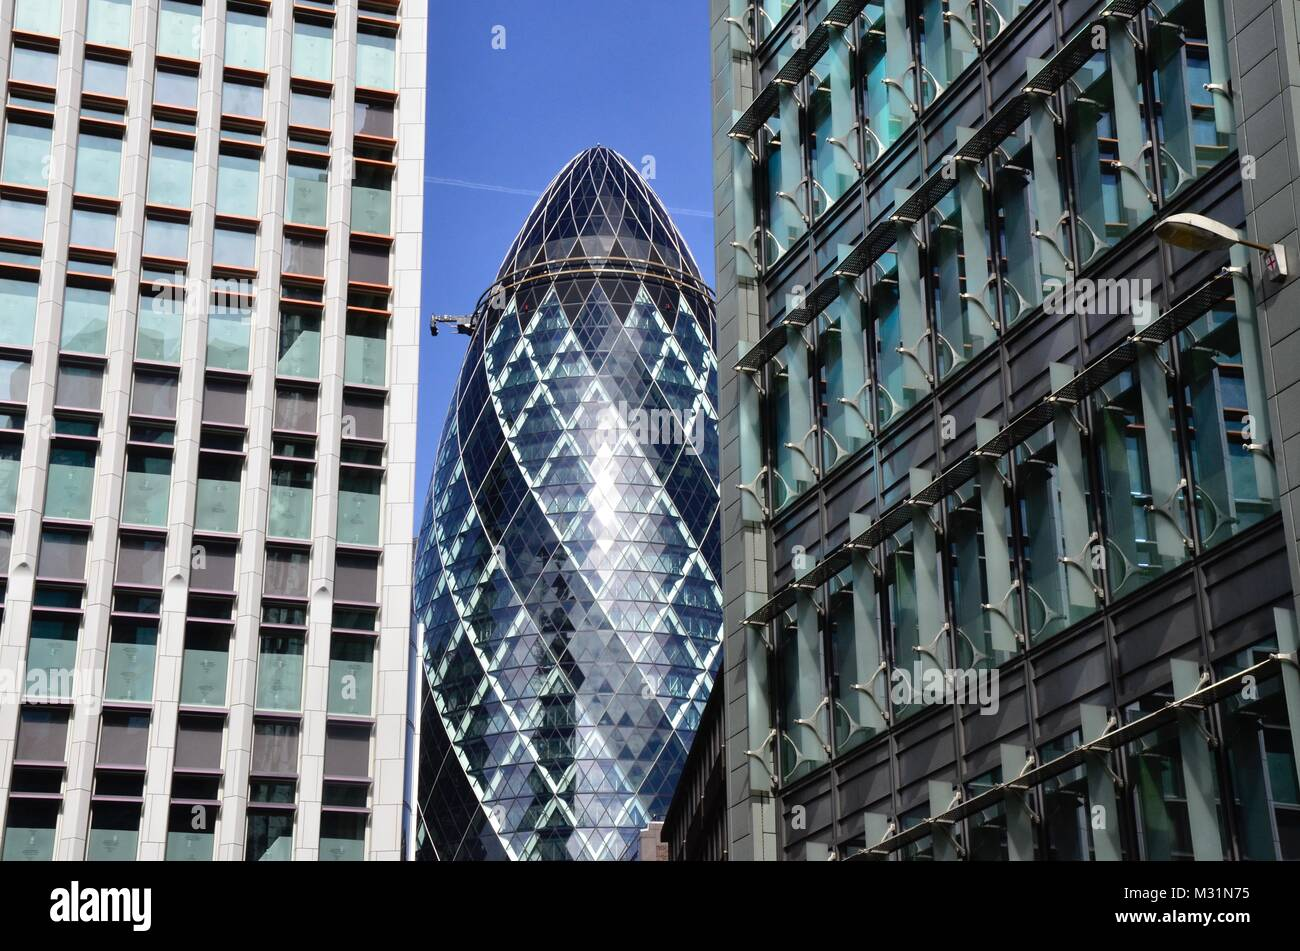 The Gherkin, St Mary Axe, London, England, UK - Stock Image